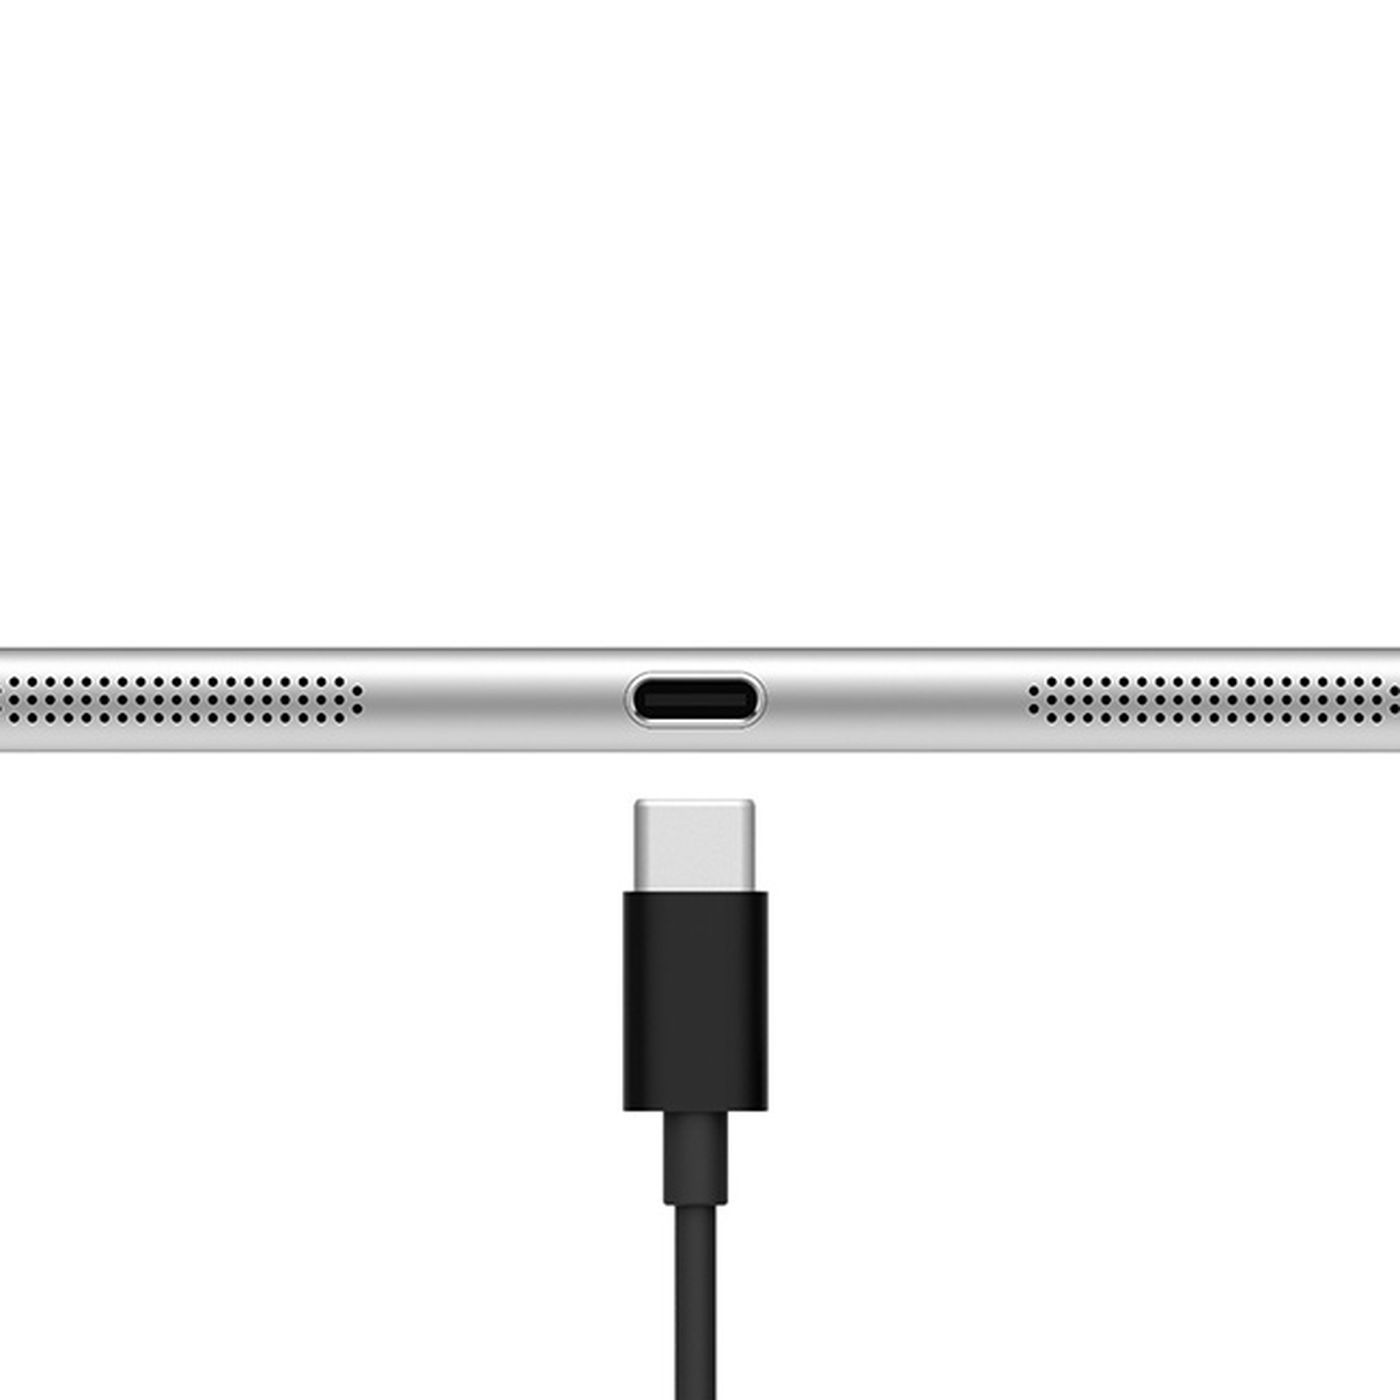 USB-C cables are playing Russian Roulette with your laptop